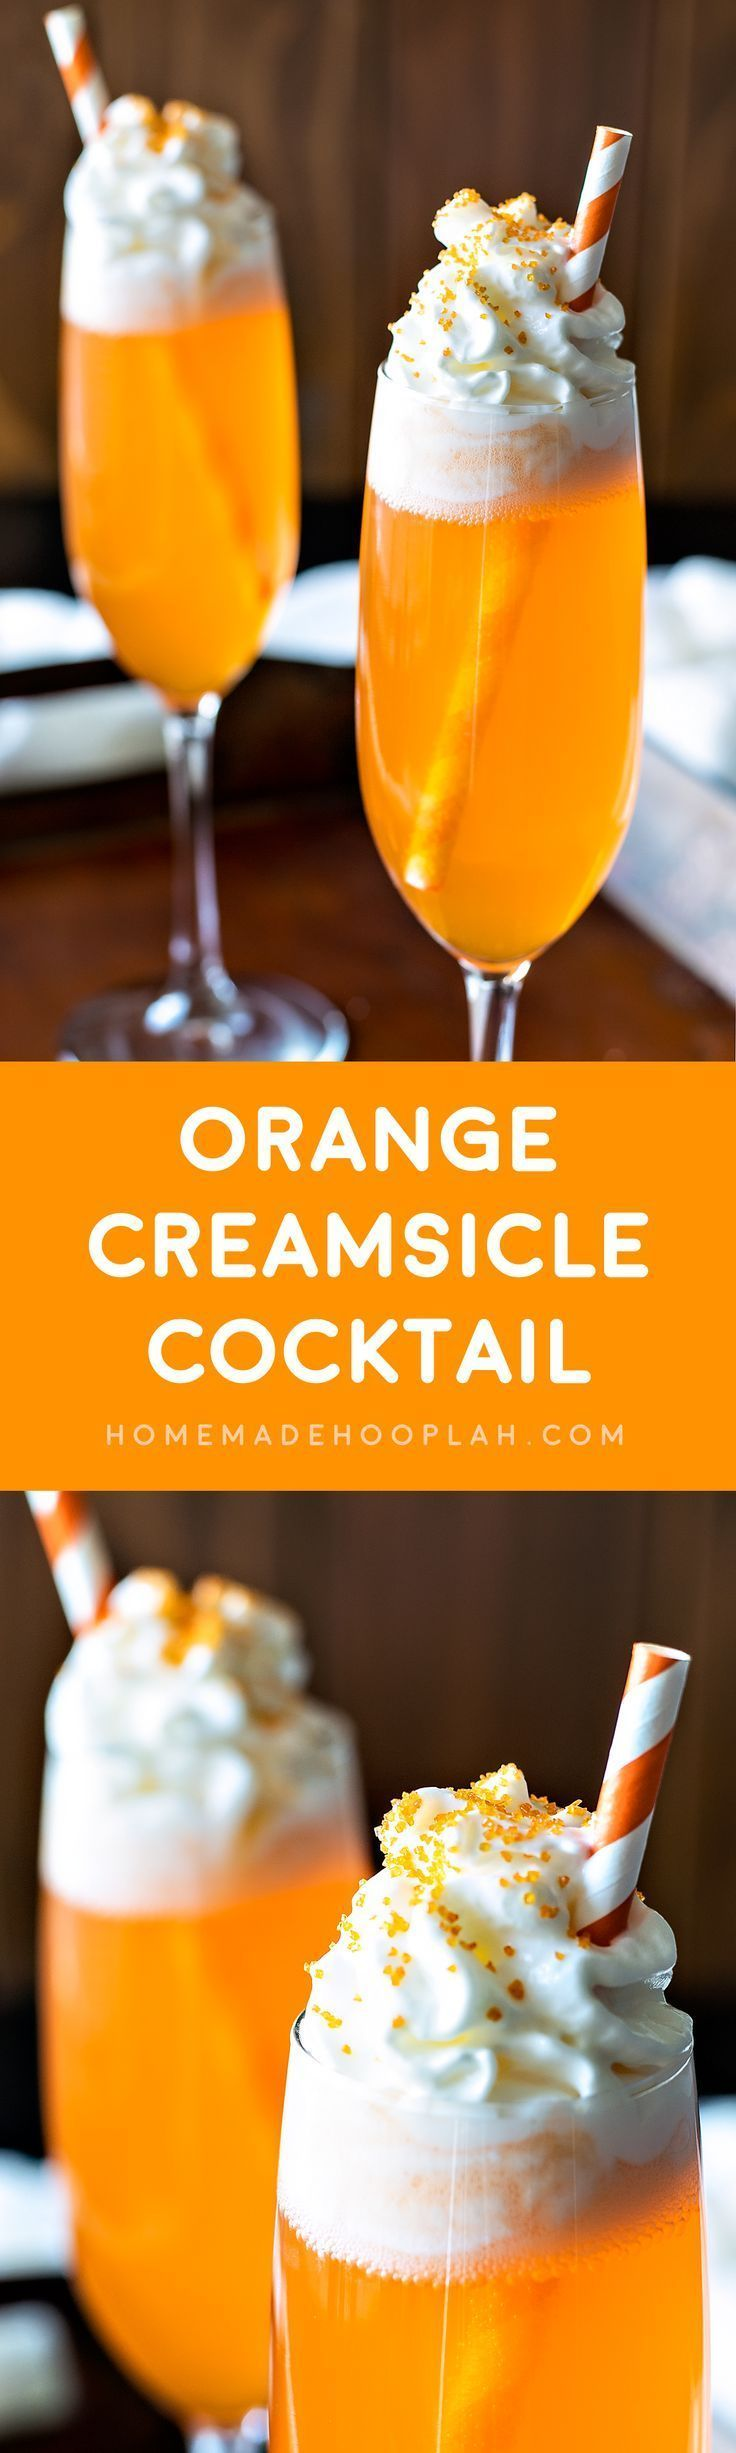 Orange Creamsicle Cocktail If You Like The Popsicle You